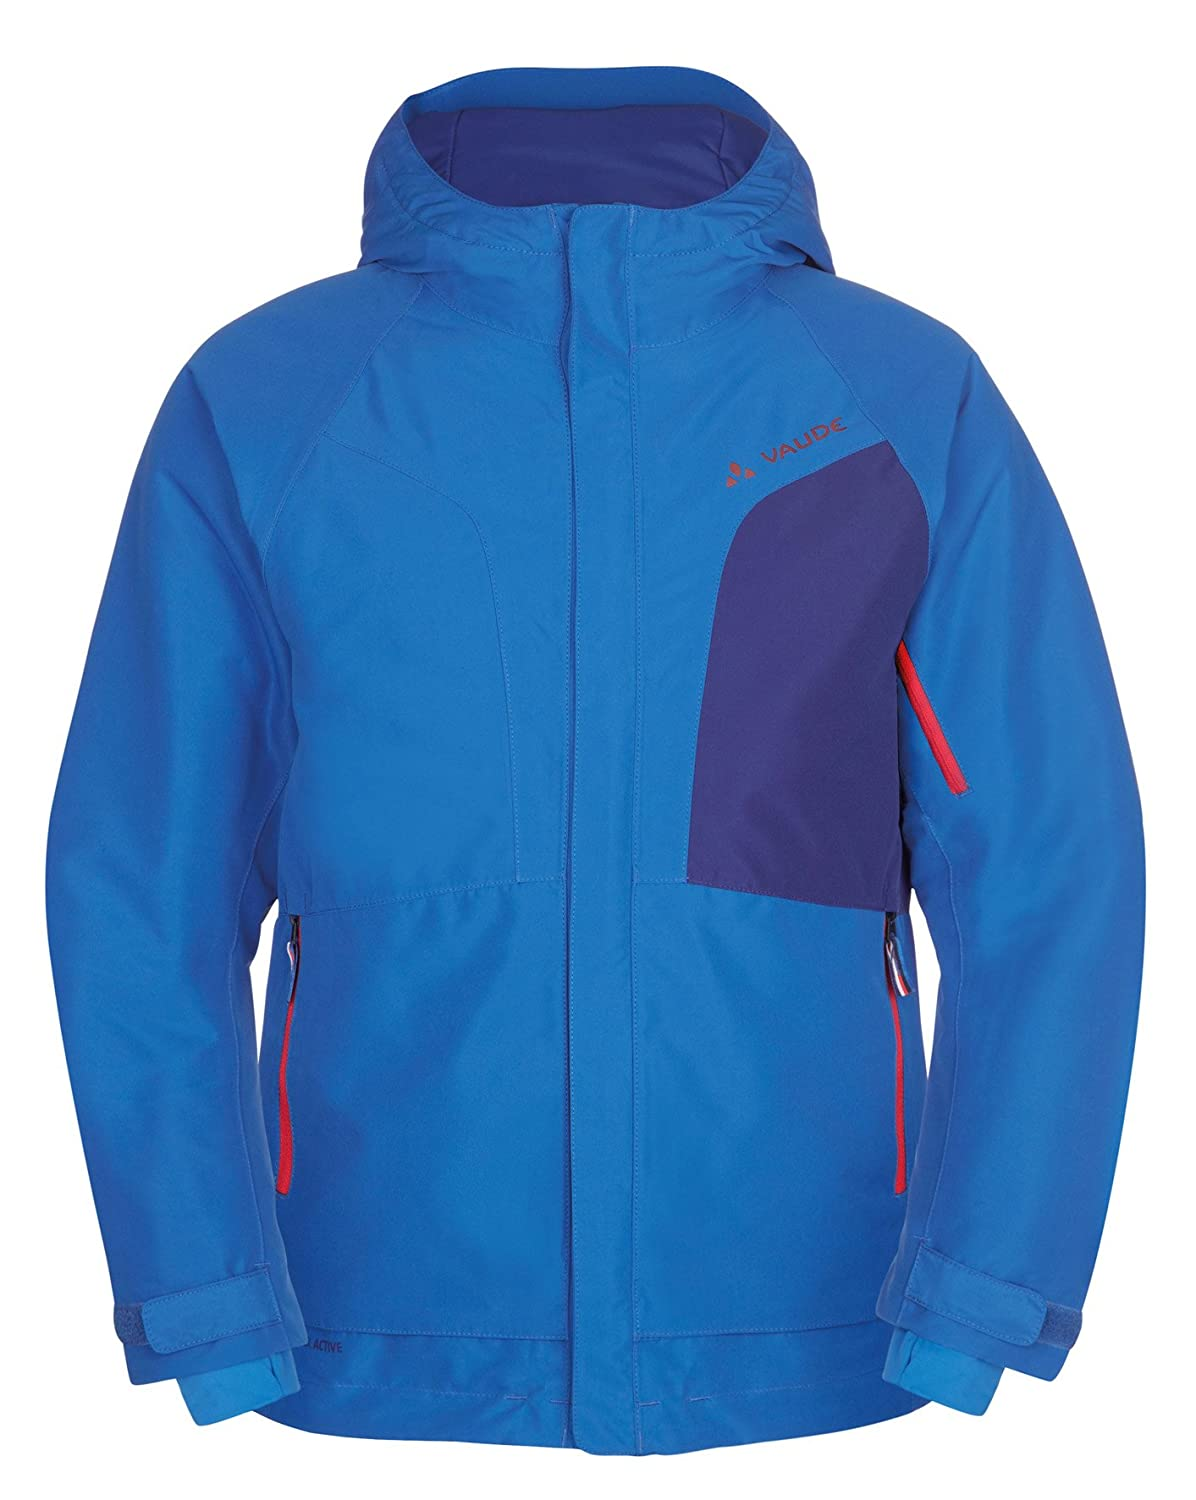 VAUDE Kinder Jacke Paul Jacket